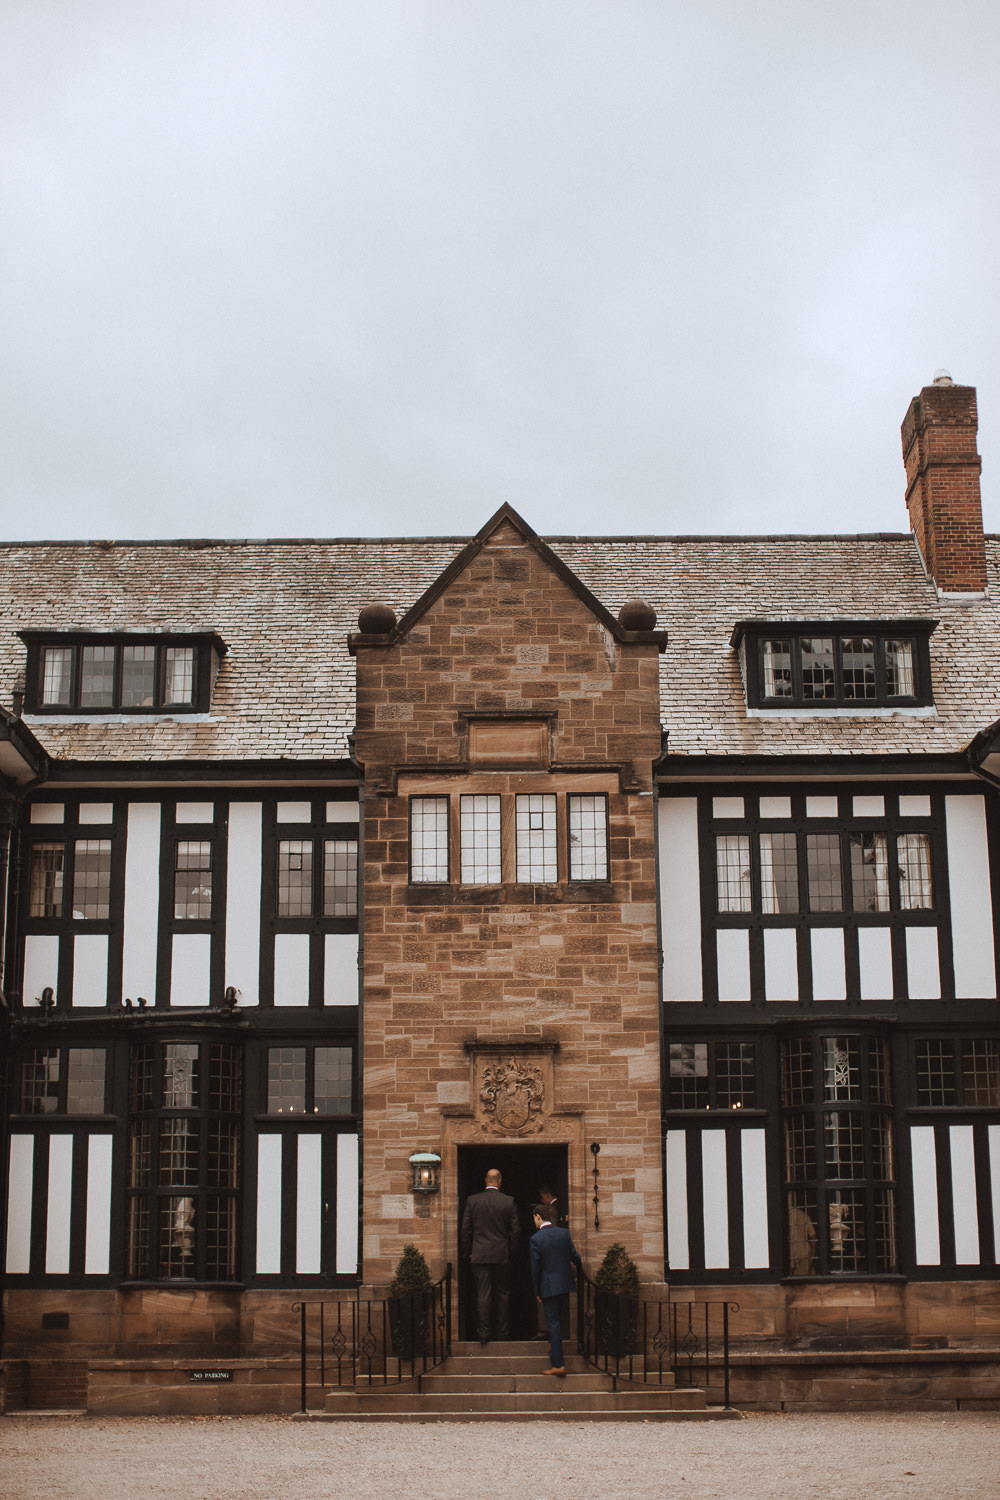 The back of the building at Inglewood Manor, Cheshire